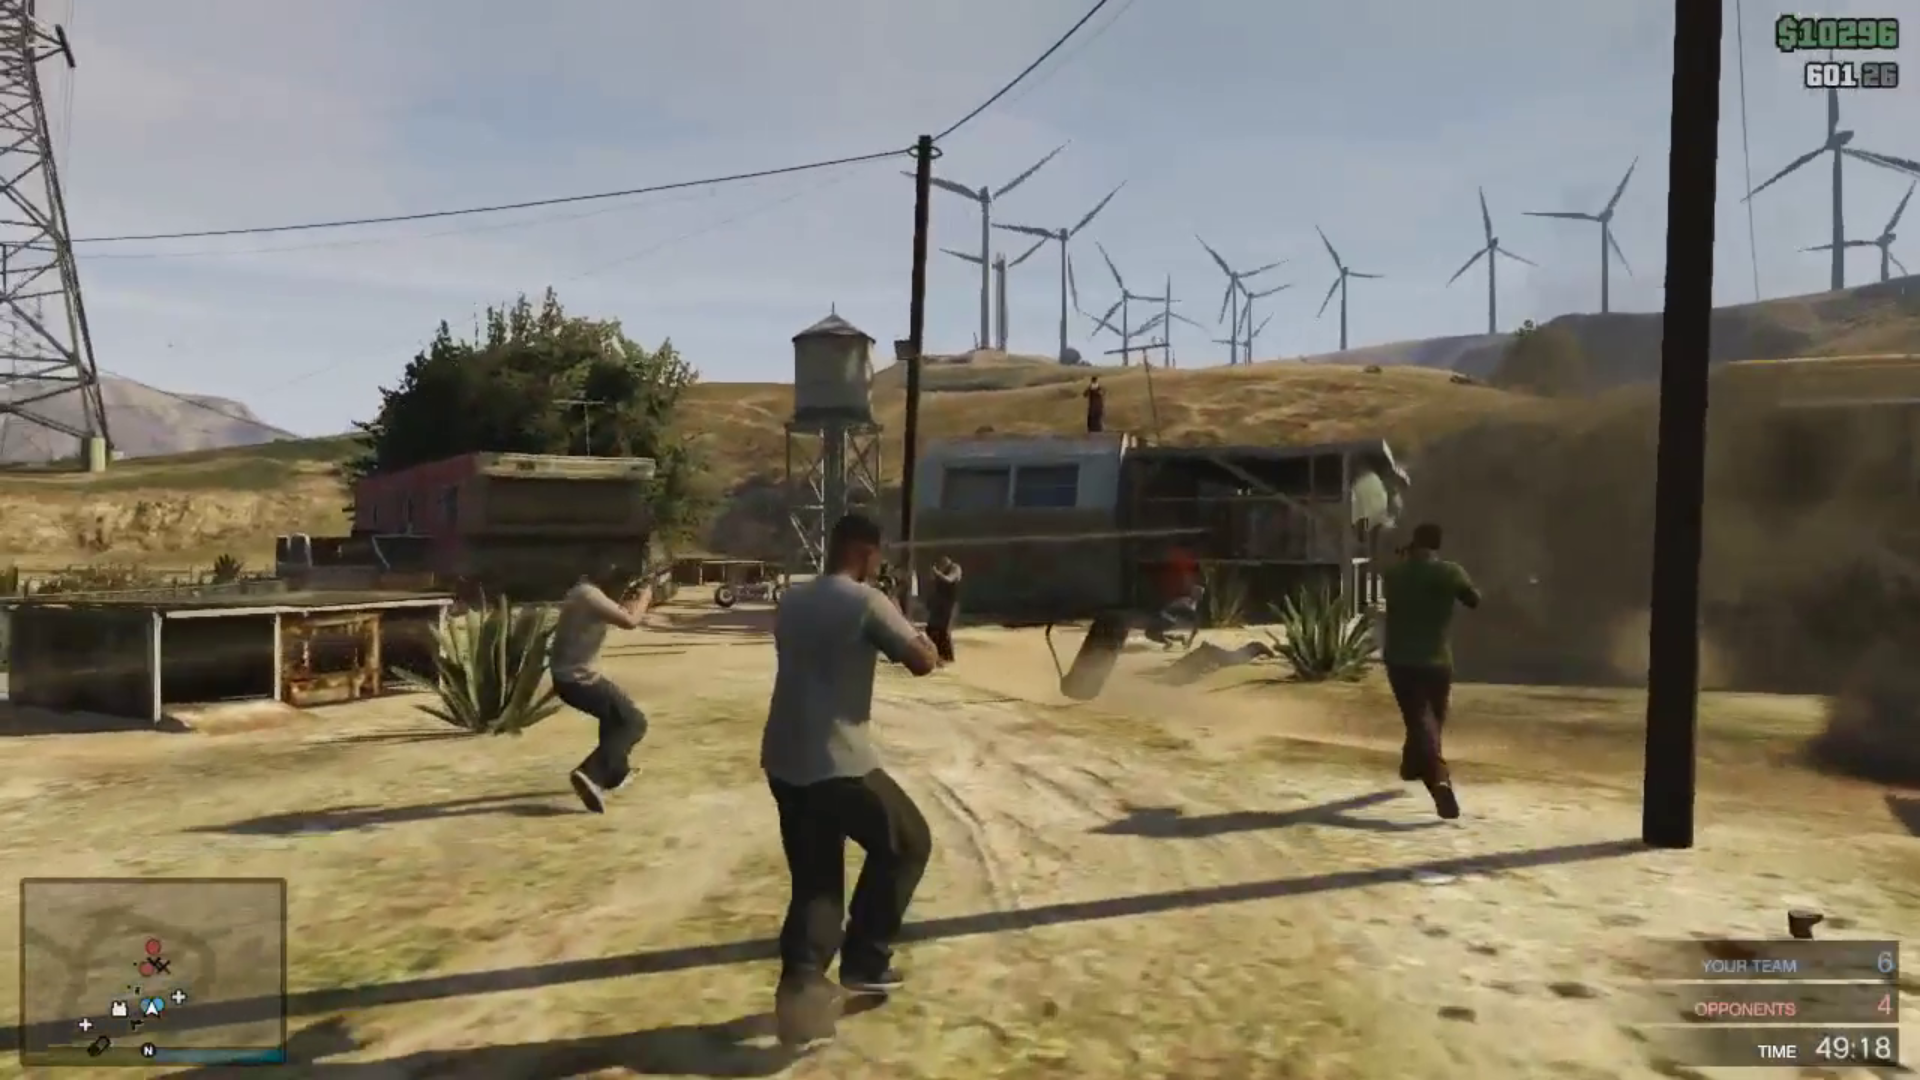 Gta V Gameplay Videos Pictures Map Leaked Shows Airplane Crashes Super Cars Random Missions And More